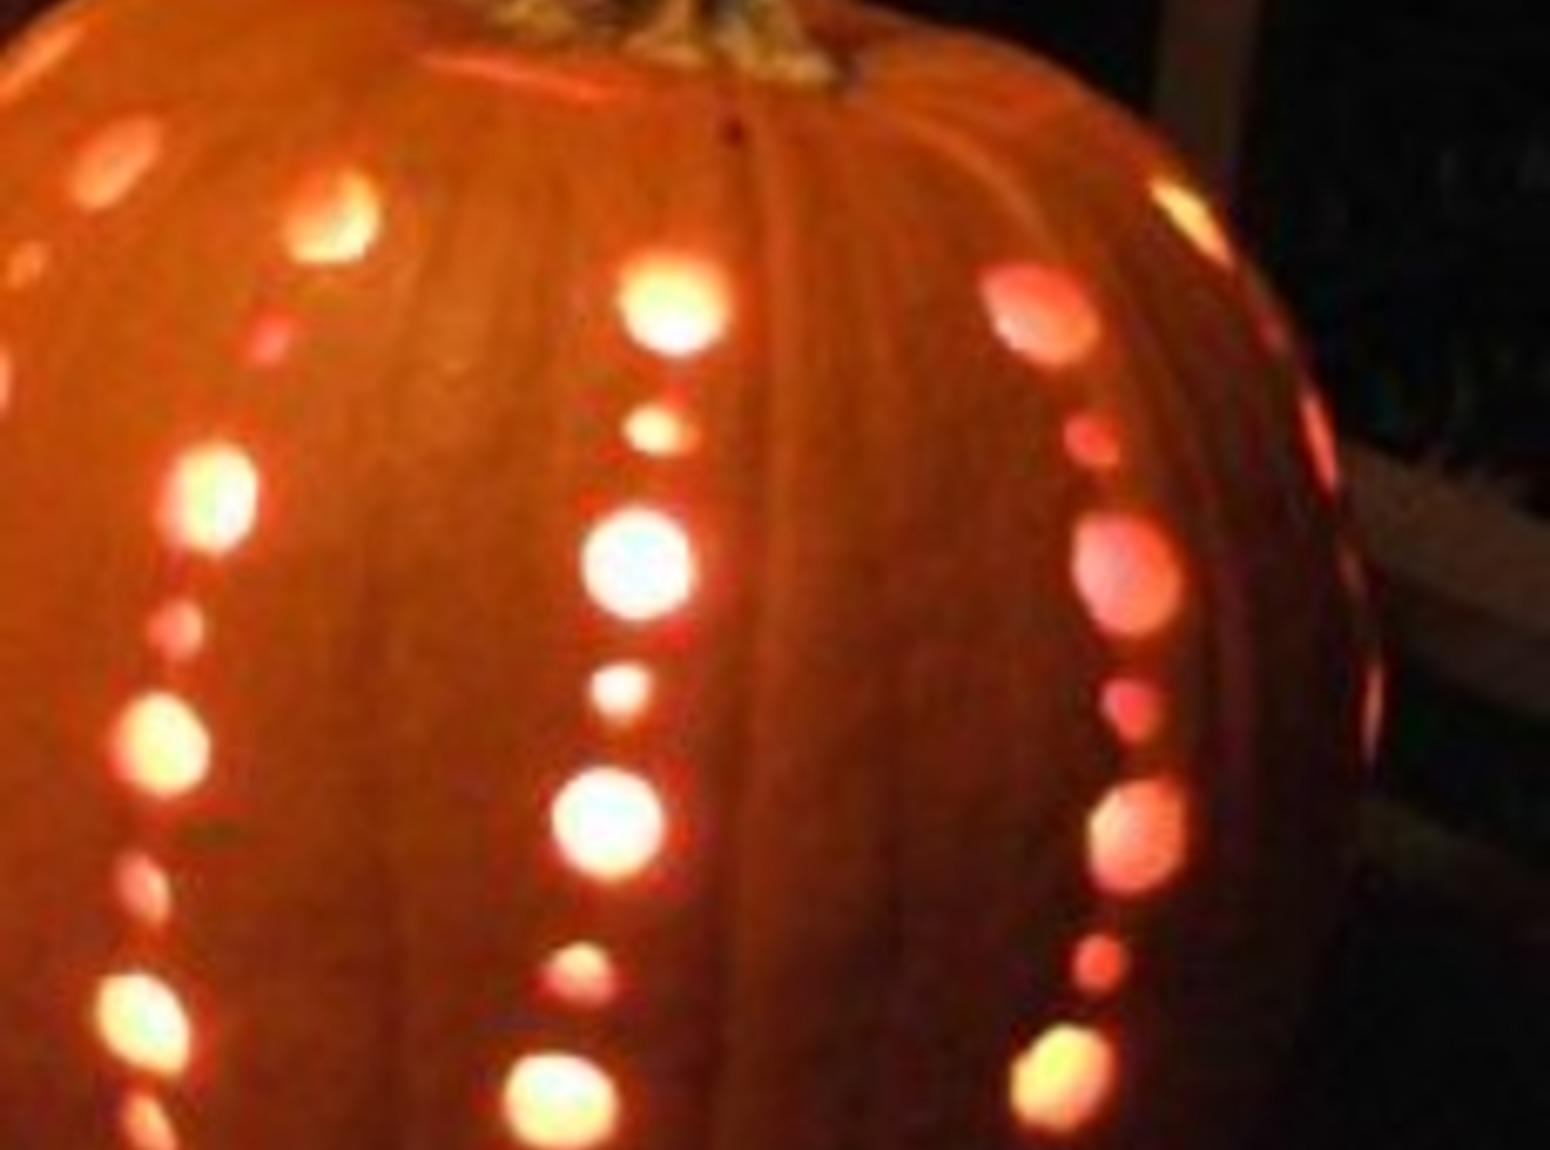 Carved punpkin air freshener Recipe